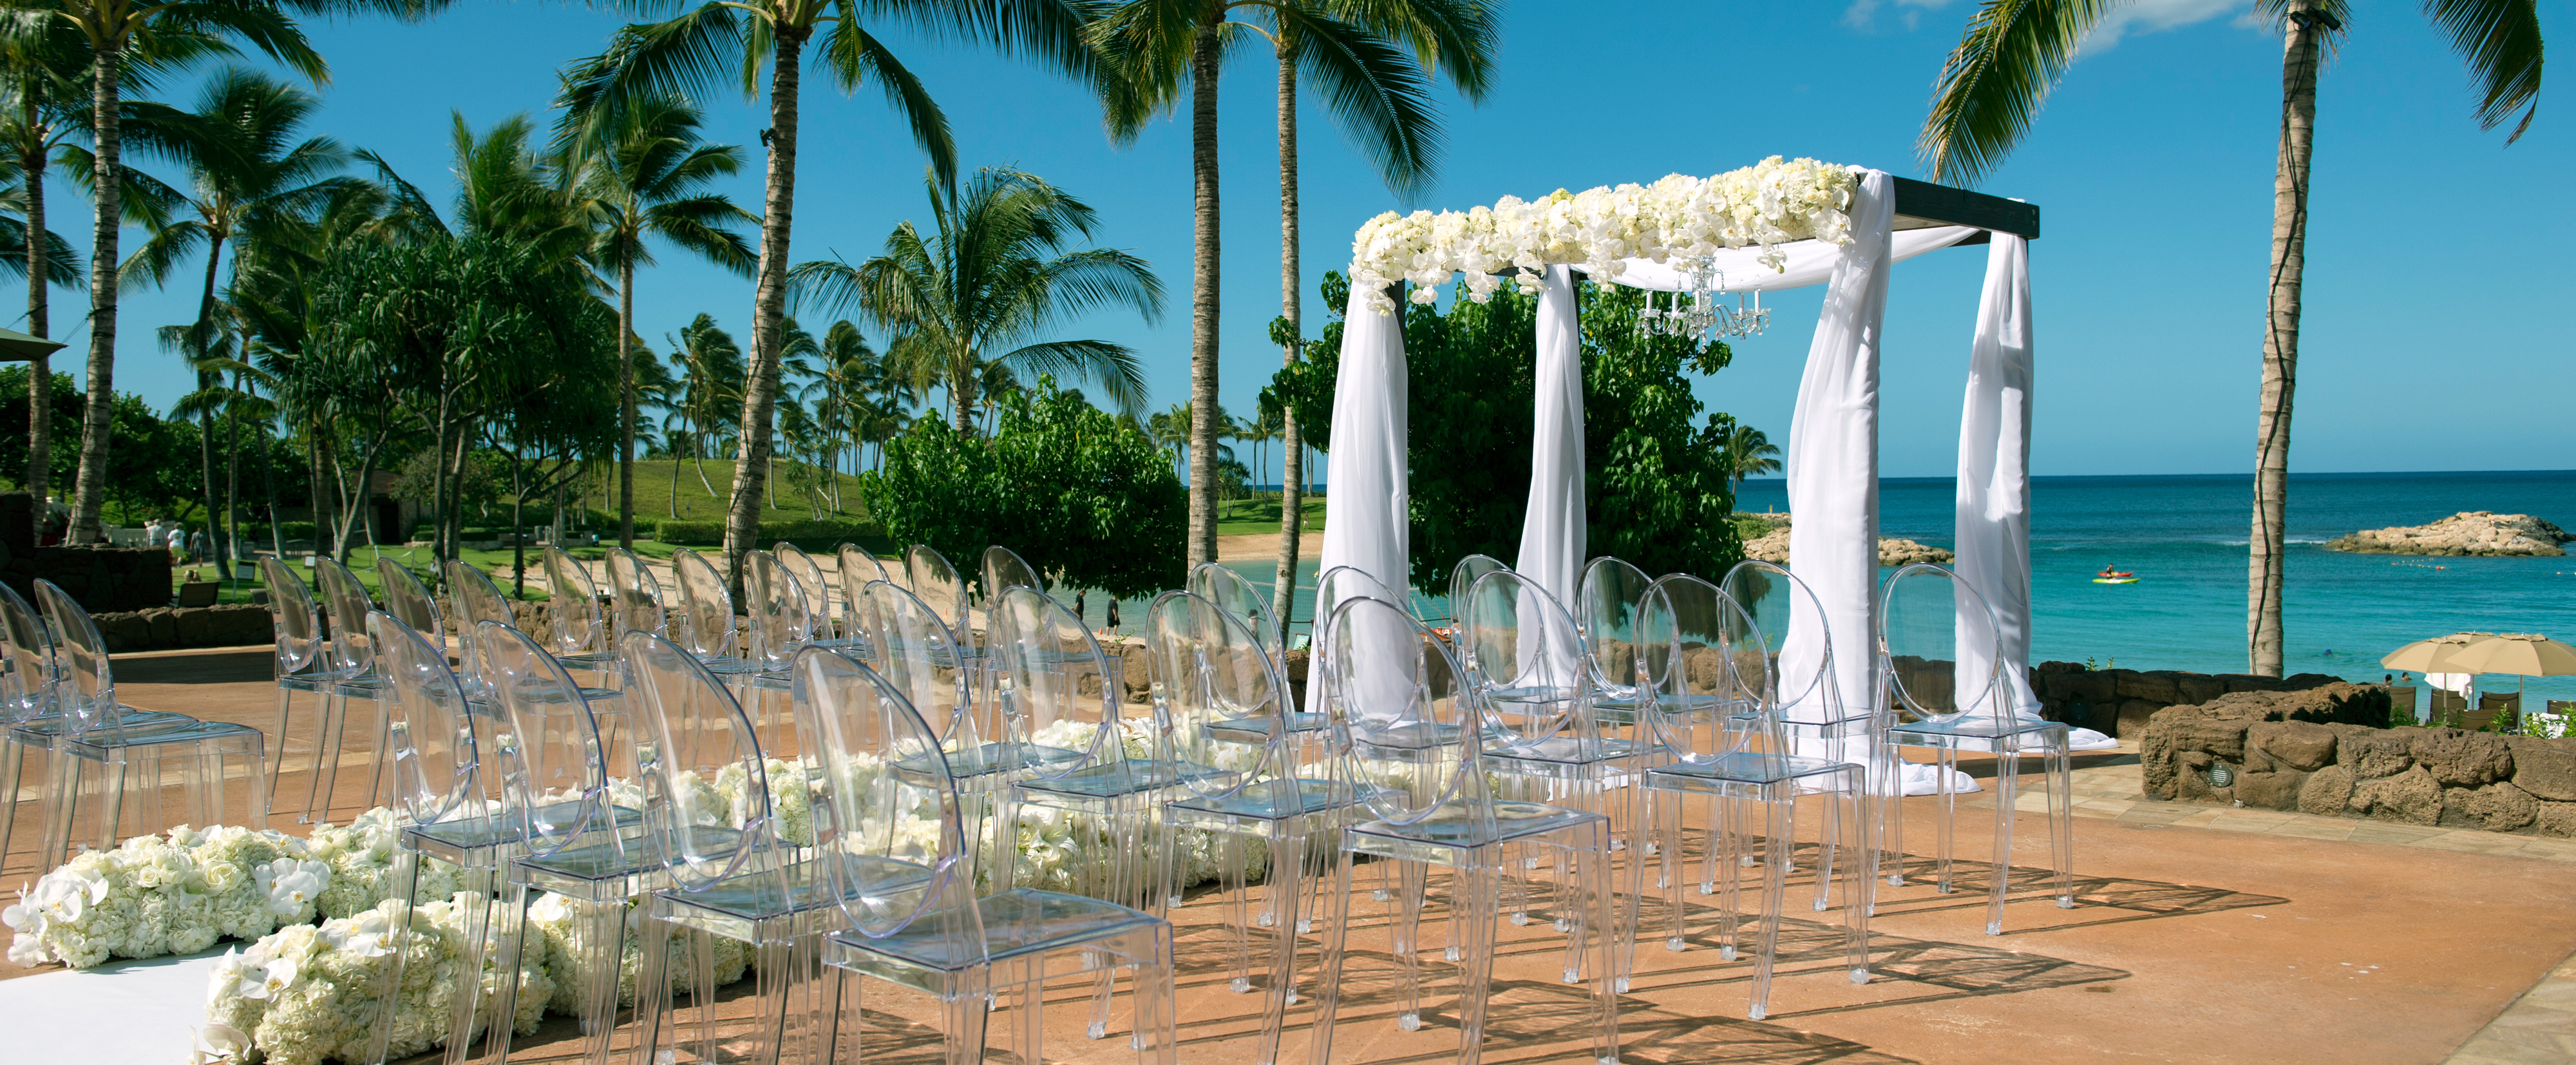 Weddings at disney parks and resorts - Rows Of Transparent Chairs Line An Aisle Leading To A Seaside Altar Draped In White Fabric Weddings And Celebrations